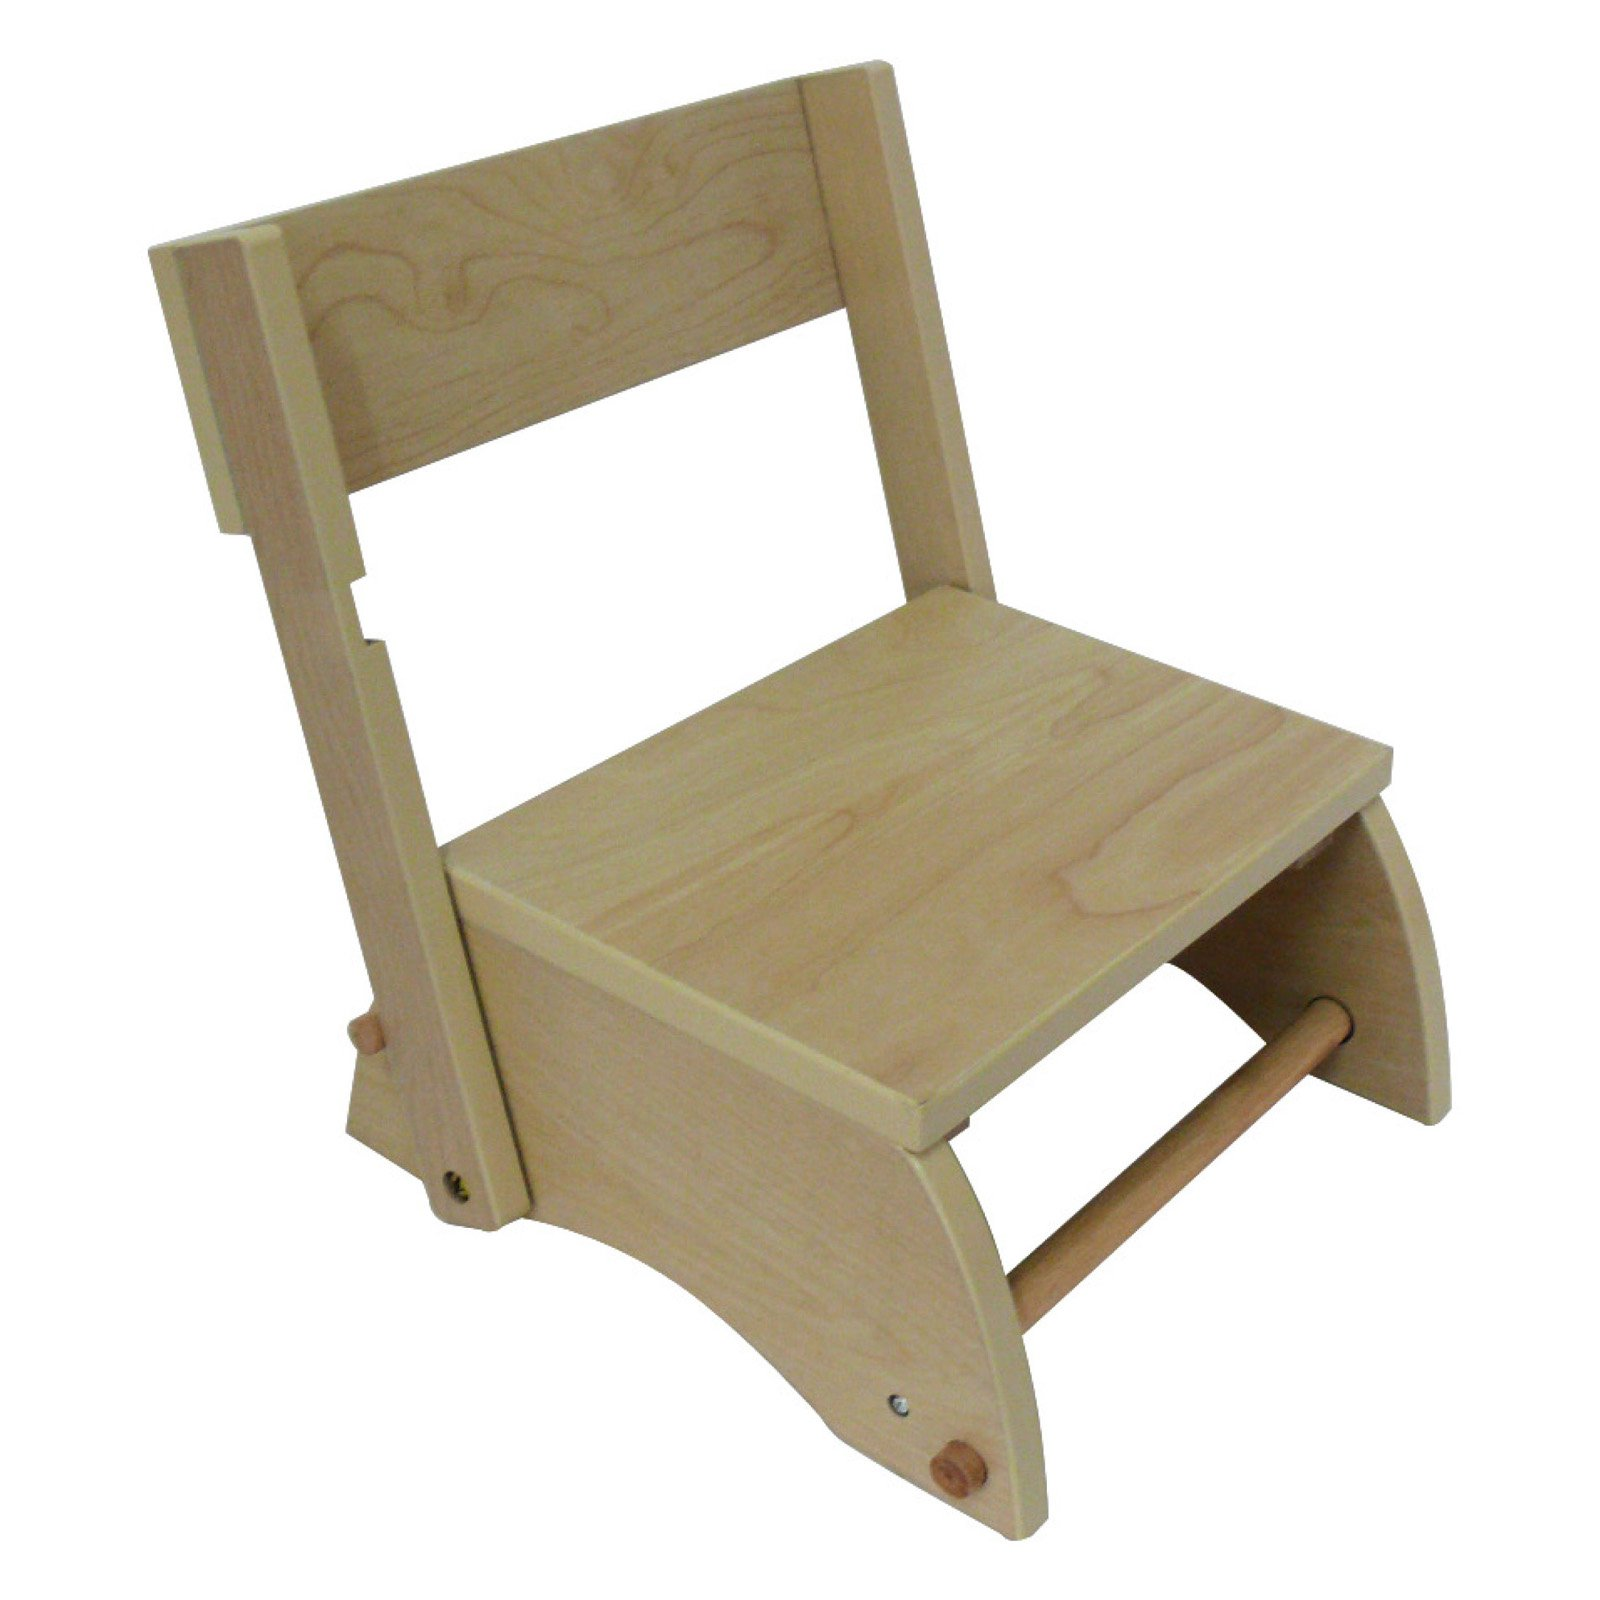 Kids Step Stool Step Stool For Kids Step Stool For